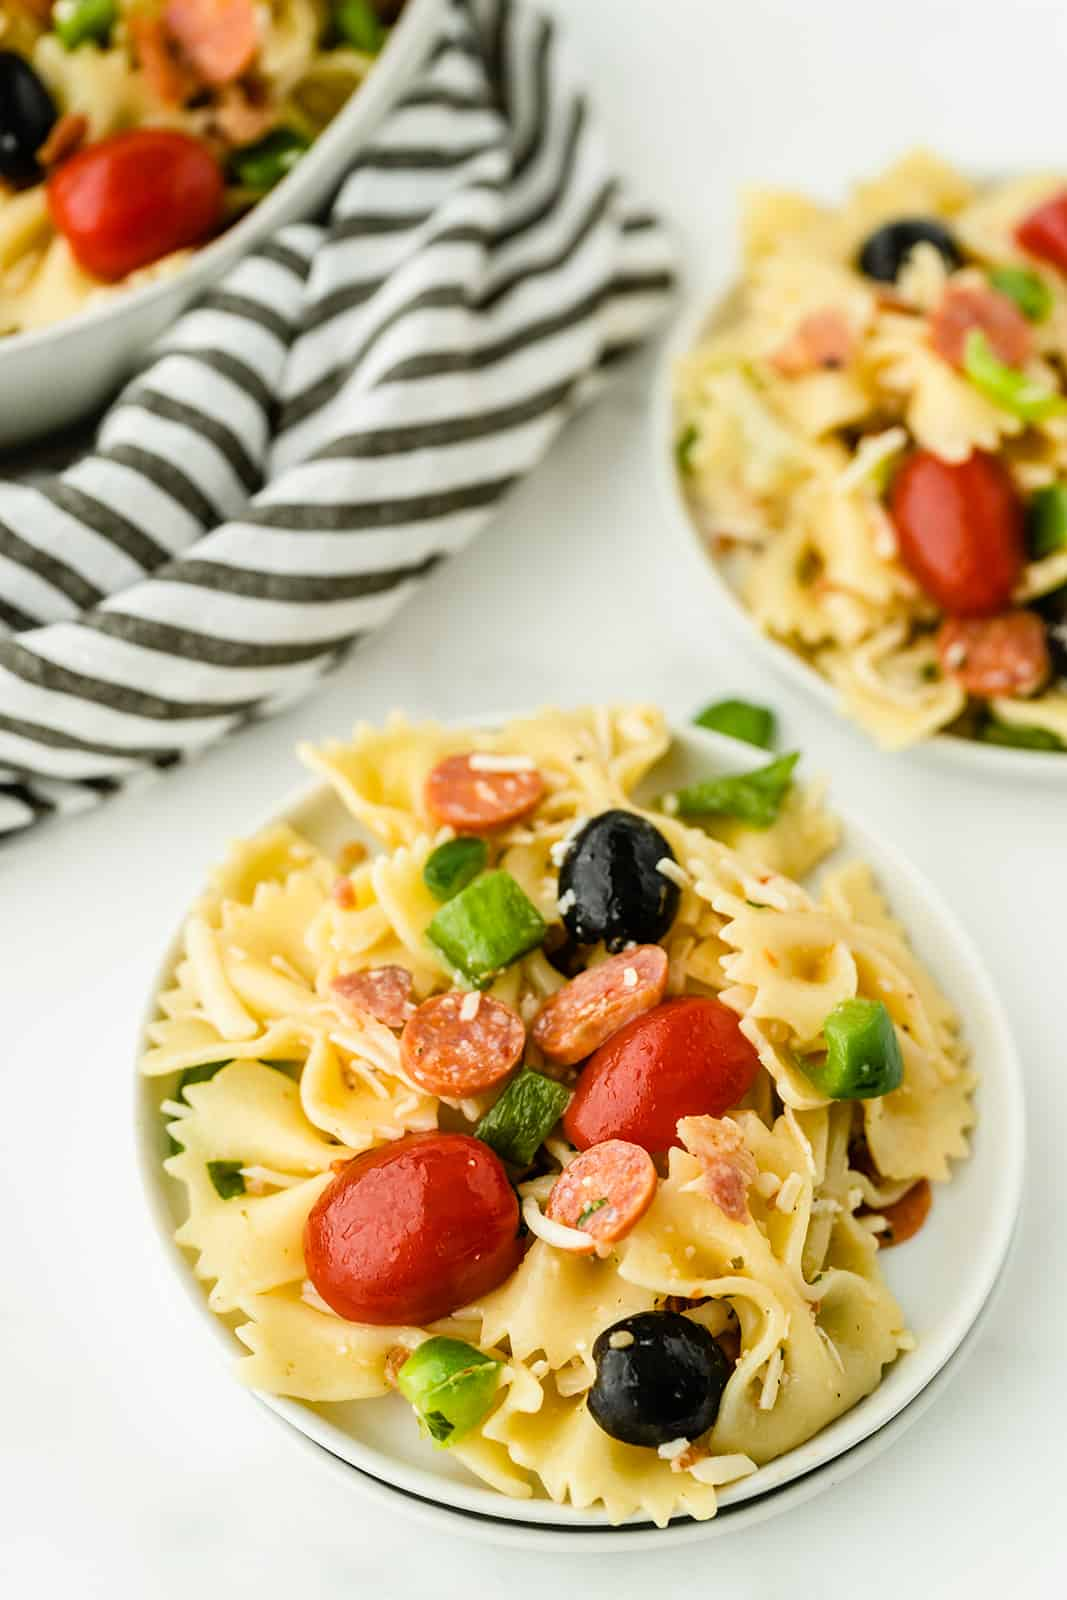 Pizza Pasta Salad - A perfect summer dish with all the best pizza flavors! Salty pepperoni and olives are coated in tangy Italian dressing and covered in cheese.